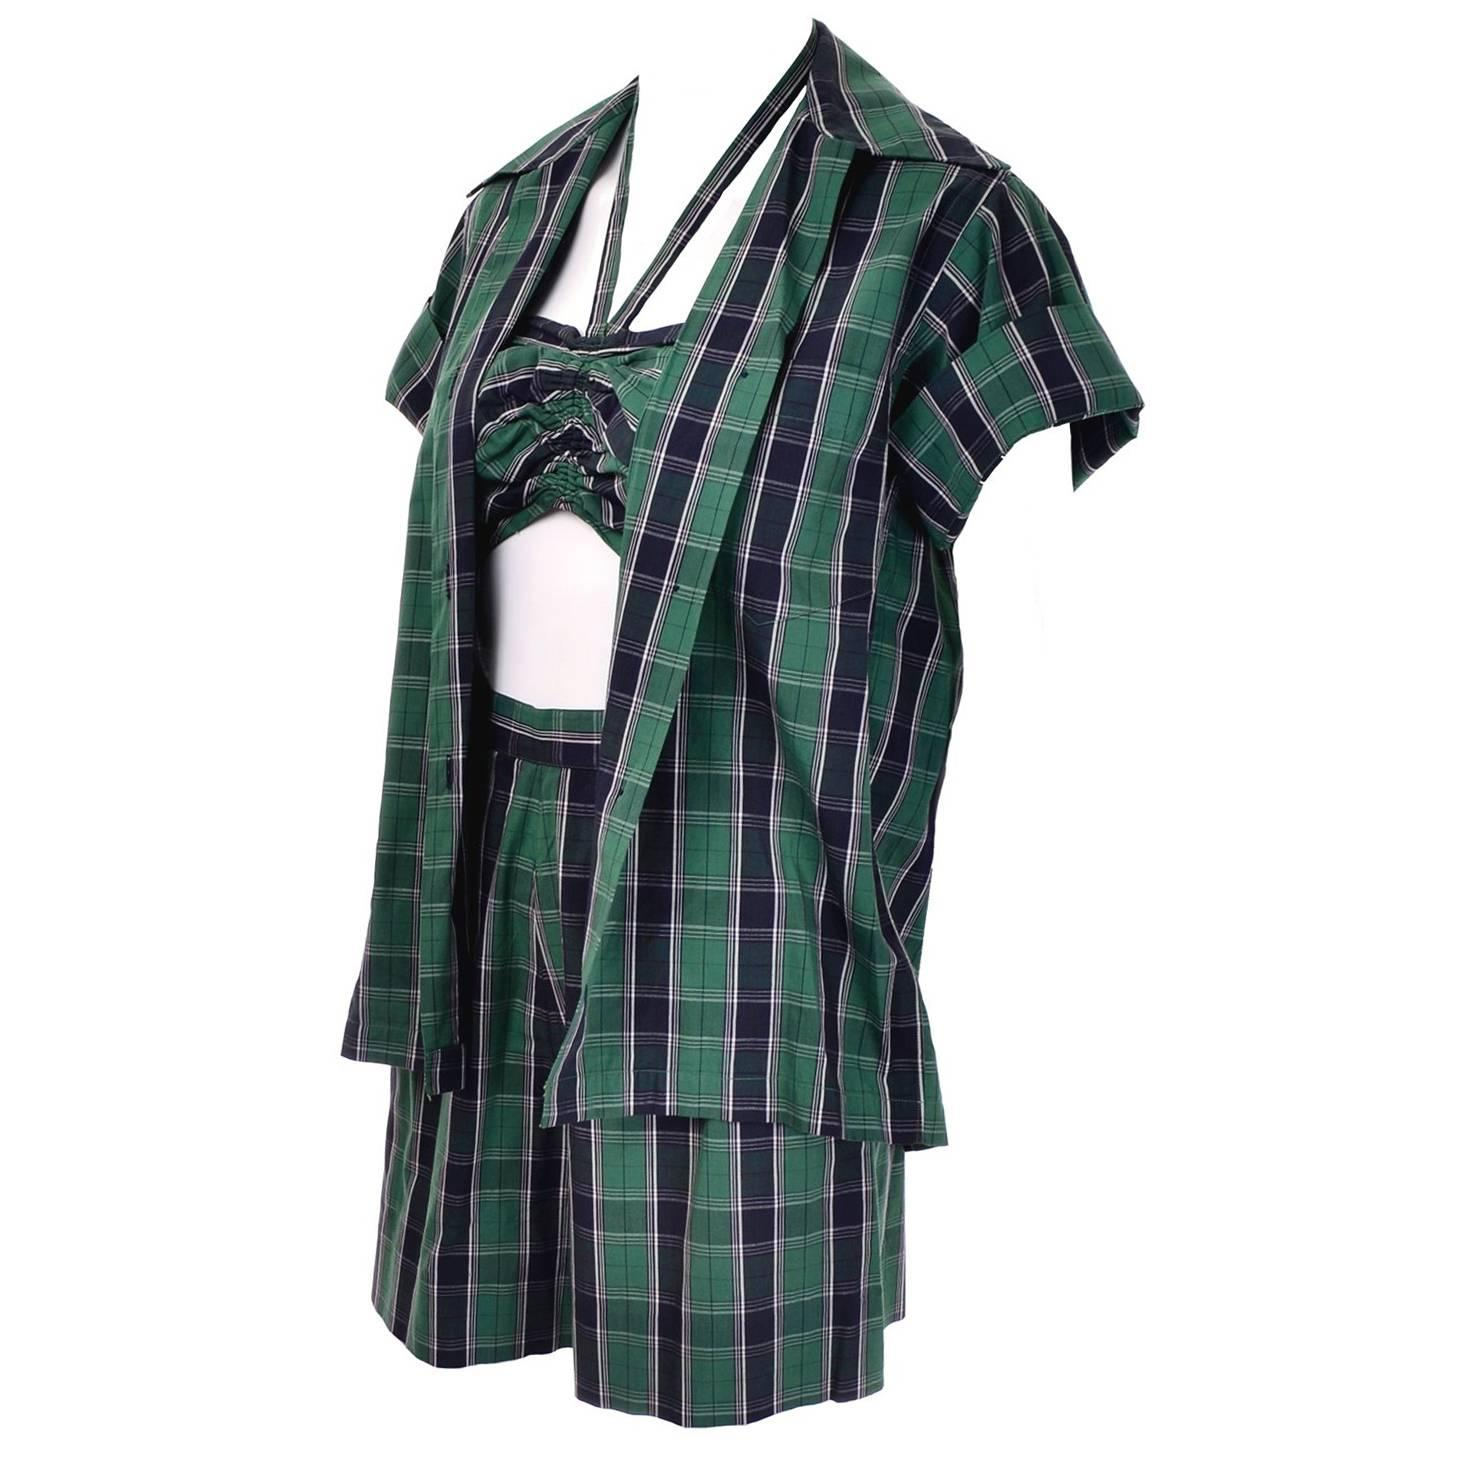 Dorothy Cox for McMullen Green Plaid Shorts Shirt & Halter Bandeau Top Playsuit